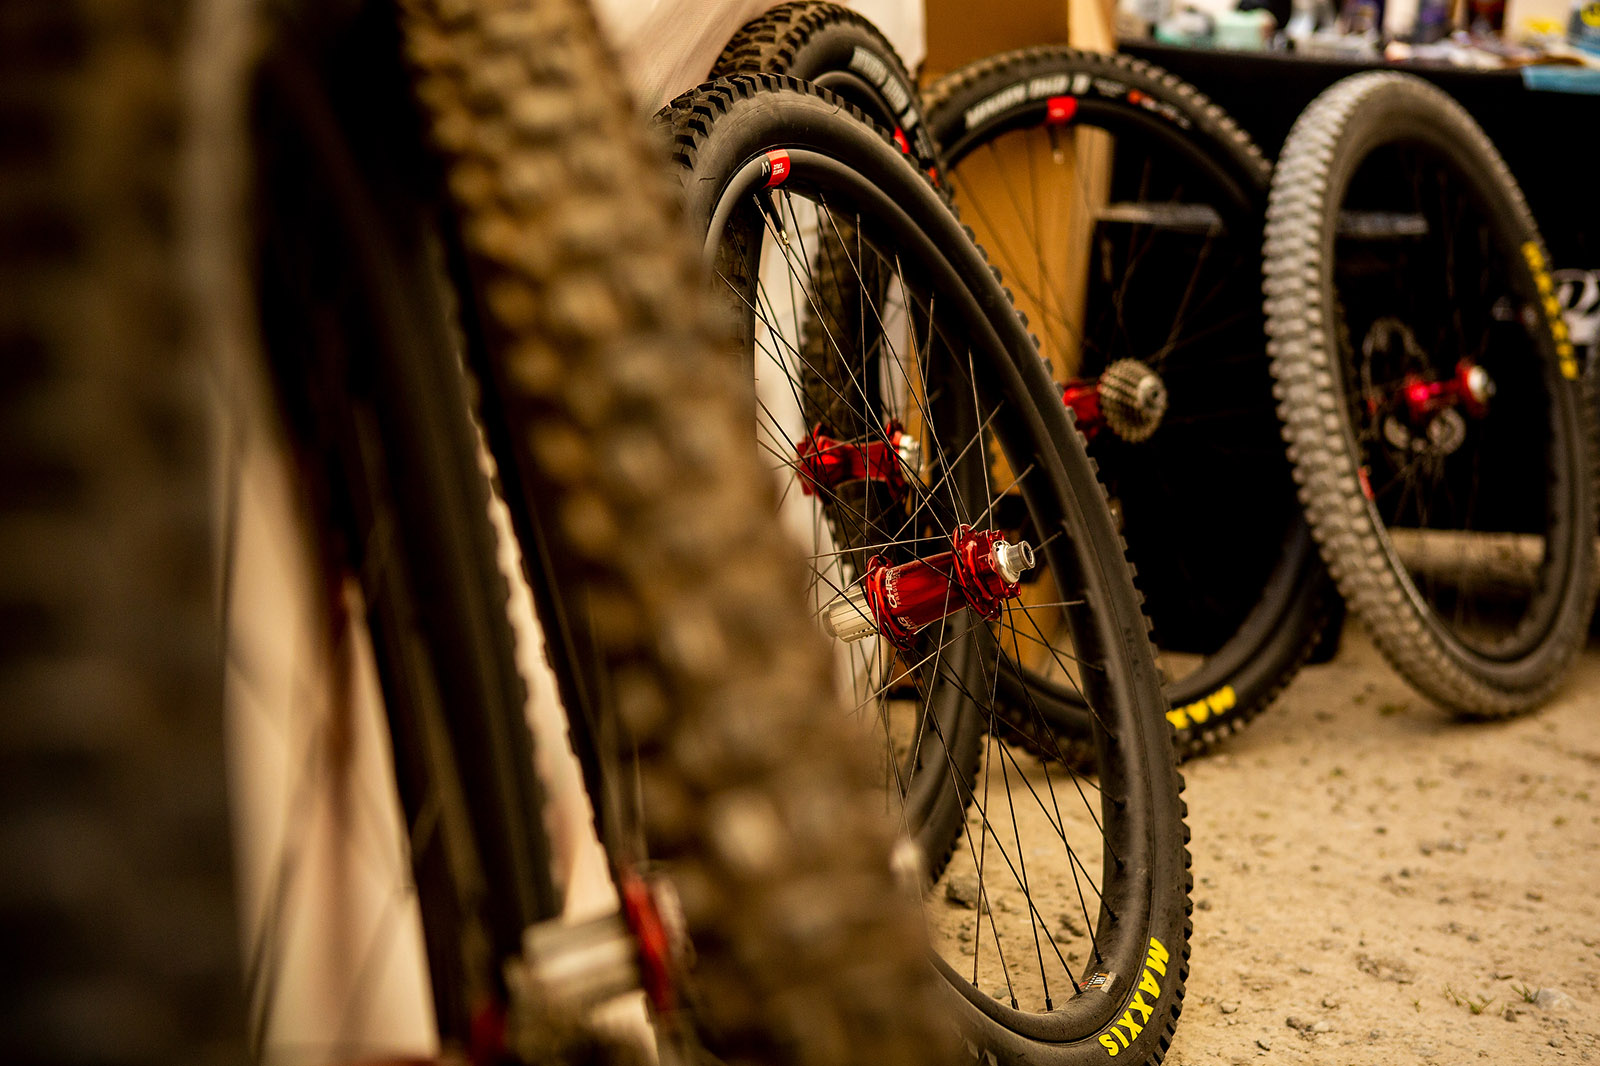 Santa Cruz Bicycles - The Syndicate's Reserve Wheels and Chris King Hubs in the Pits